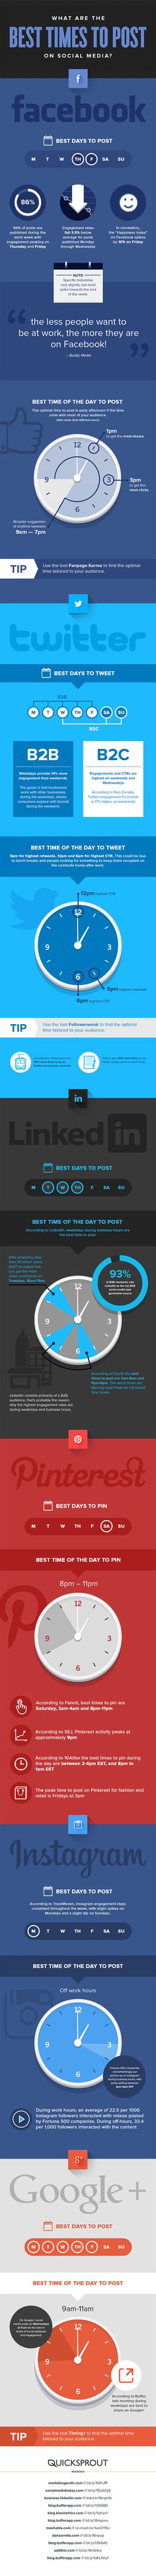 FAQ What Are The Best Times to Post on Social Media #Infographic